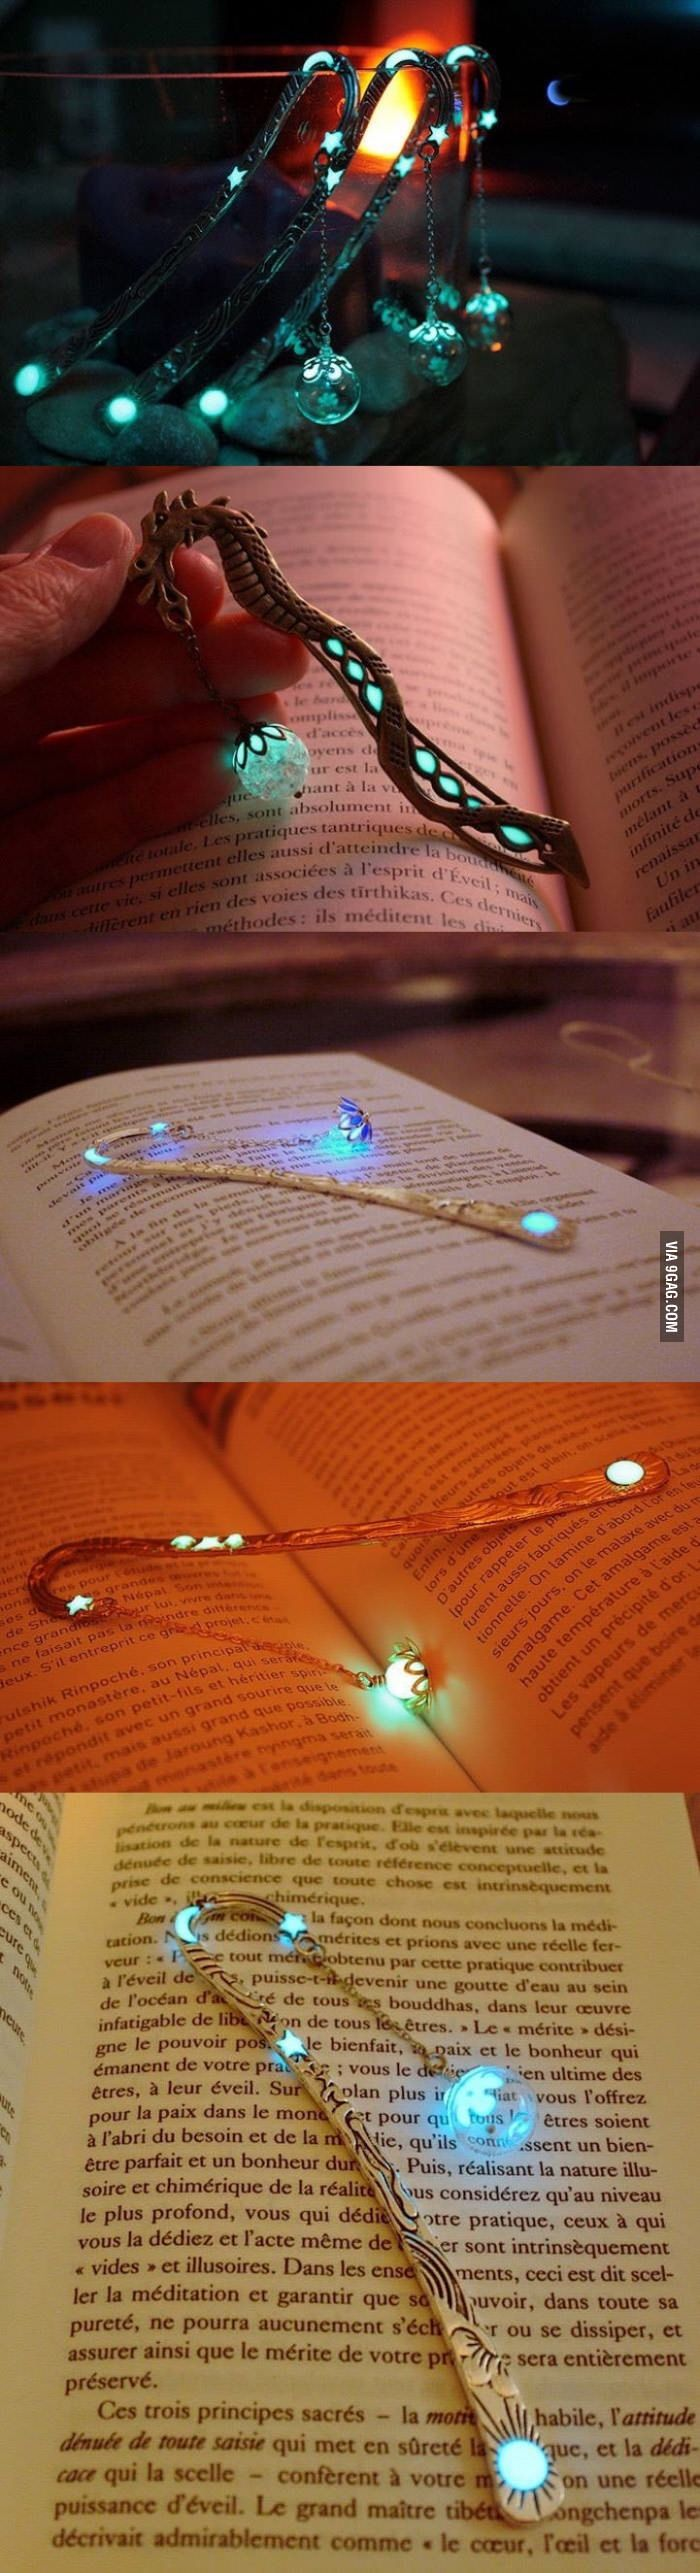 Glow-in-the-dark bookmarks that will certainly add a touch of magic to your reading (Manon Richard)